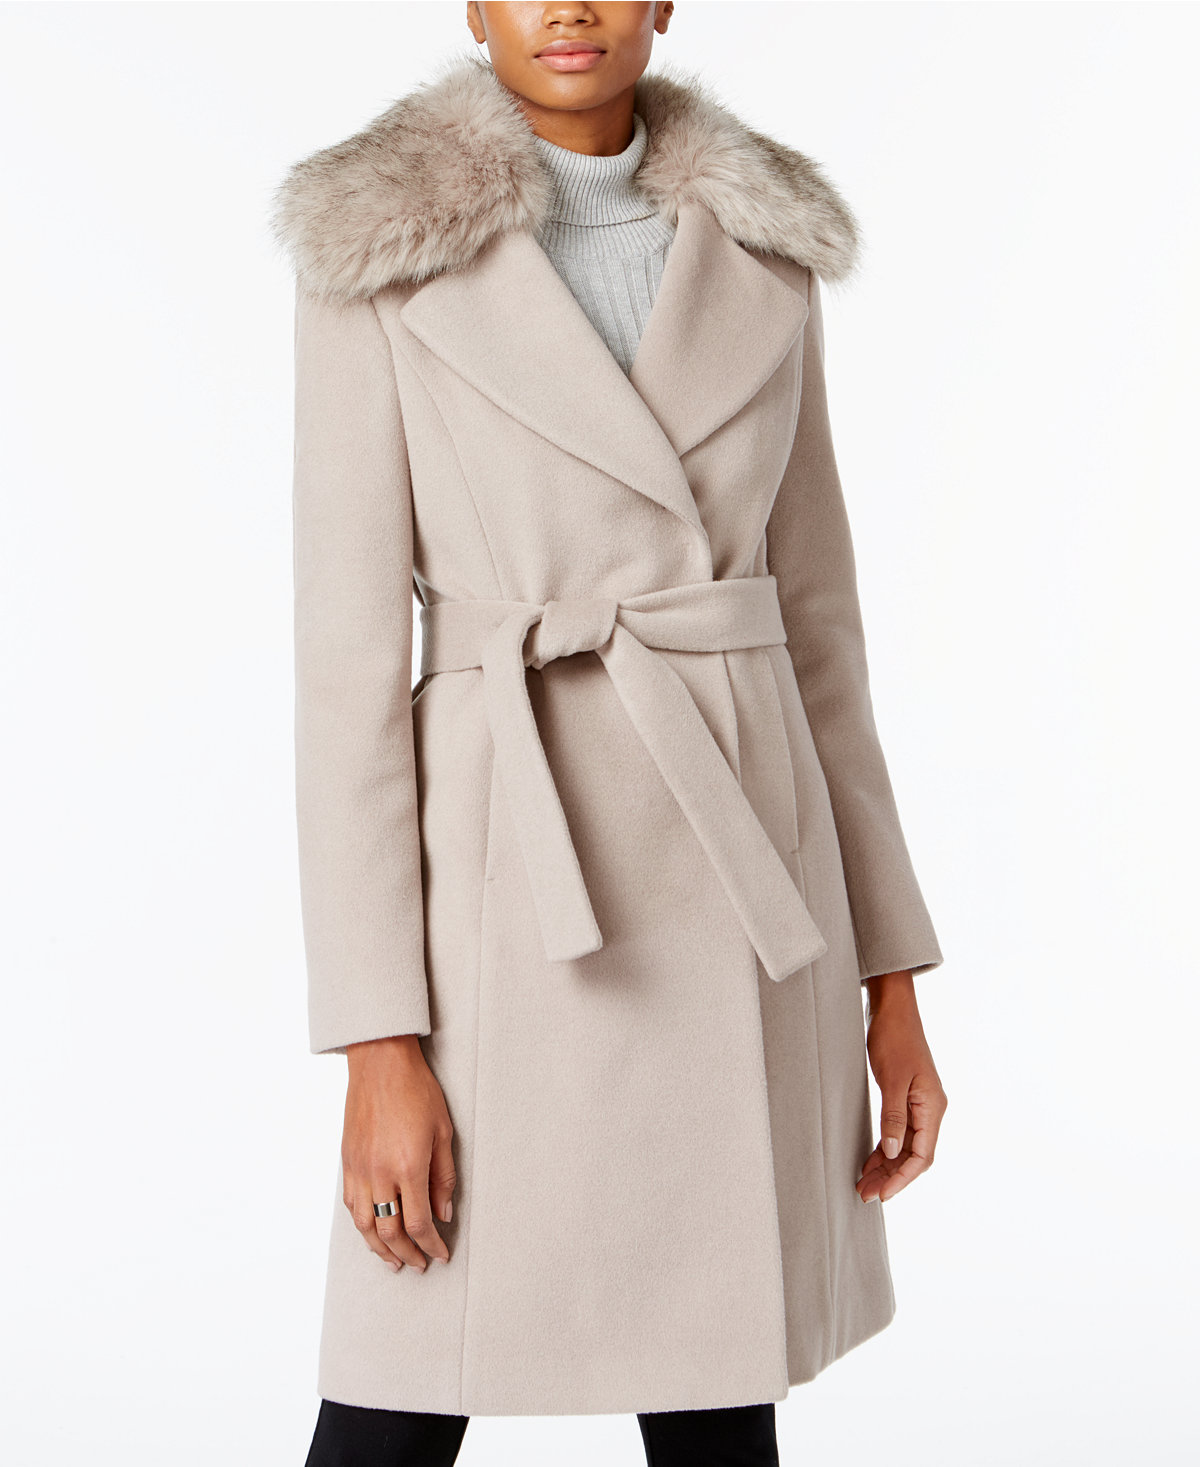 MACYS BLACK FRIDAY PREVIEW SALE WOMEN'S APPAREL STARTING AT $19.99!